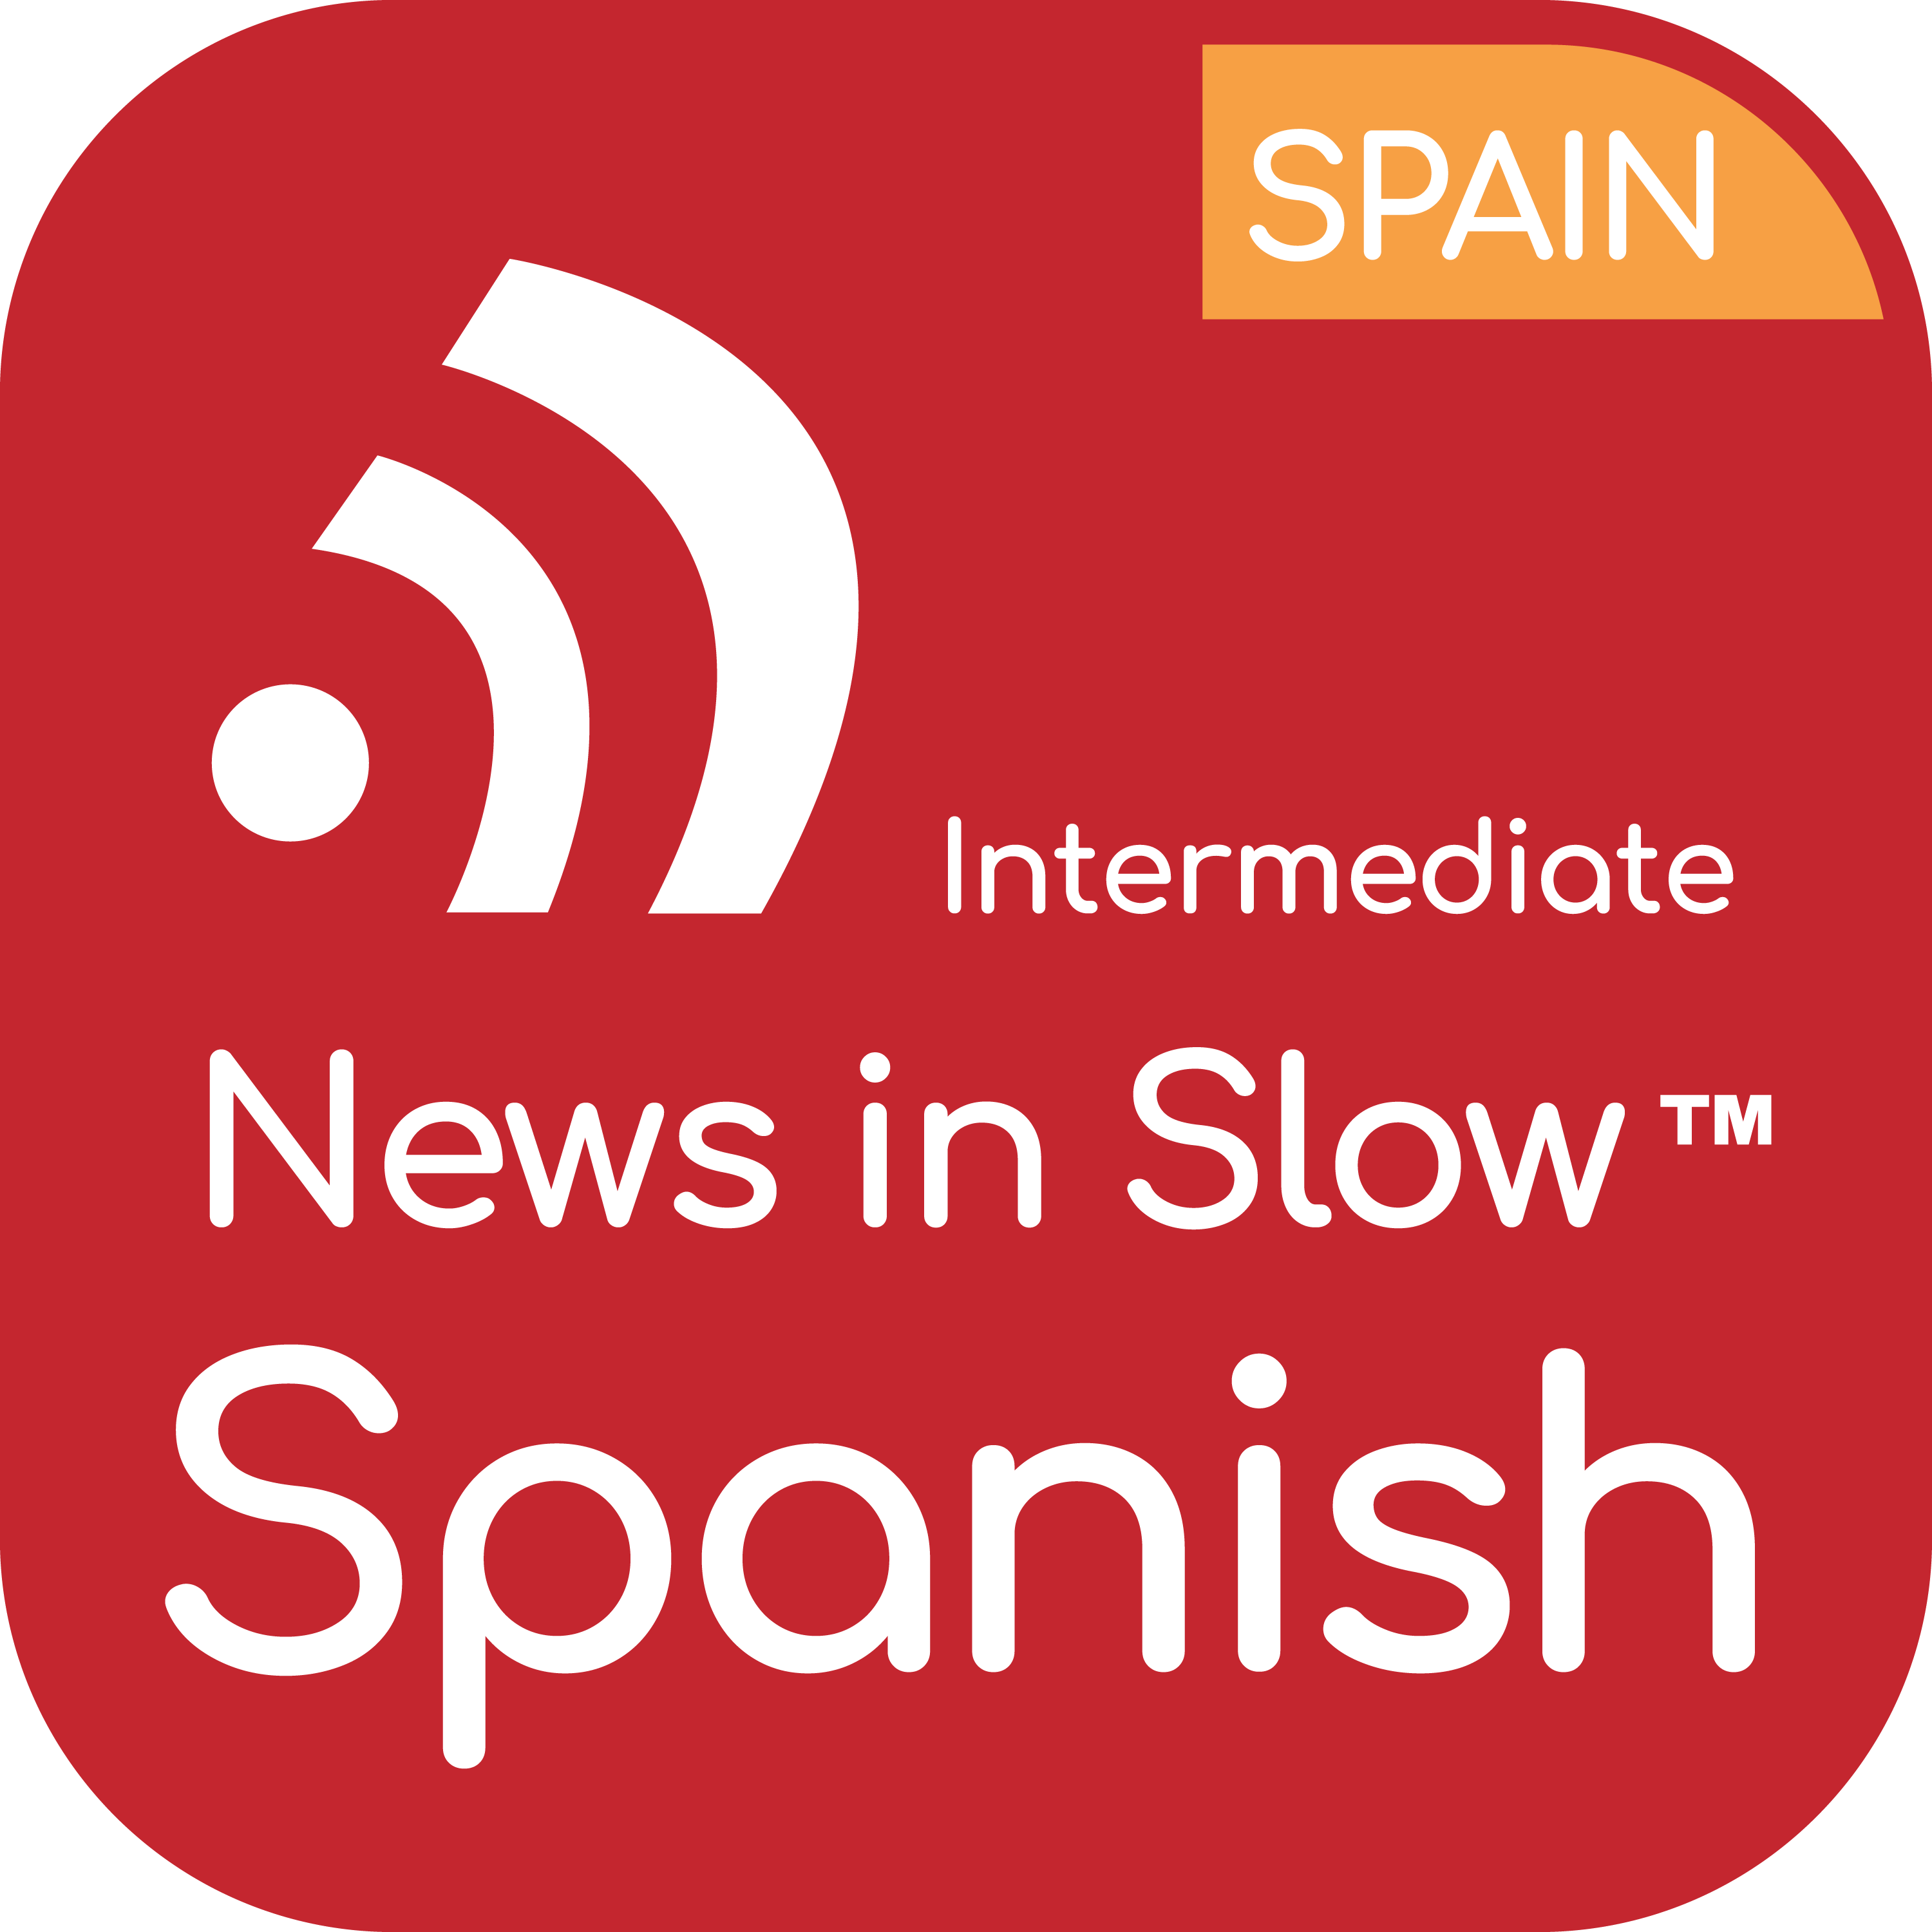 News in Slow Spanish - #576 - Spanish Grammar, News and Expressions